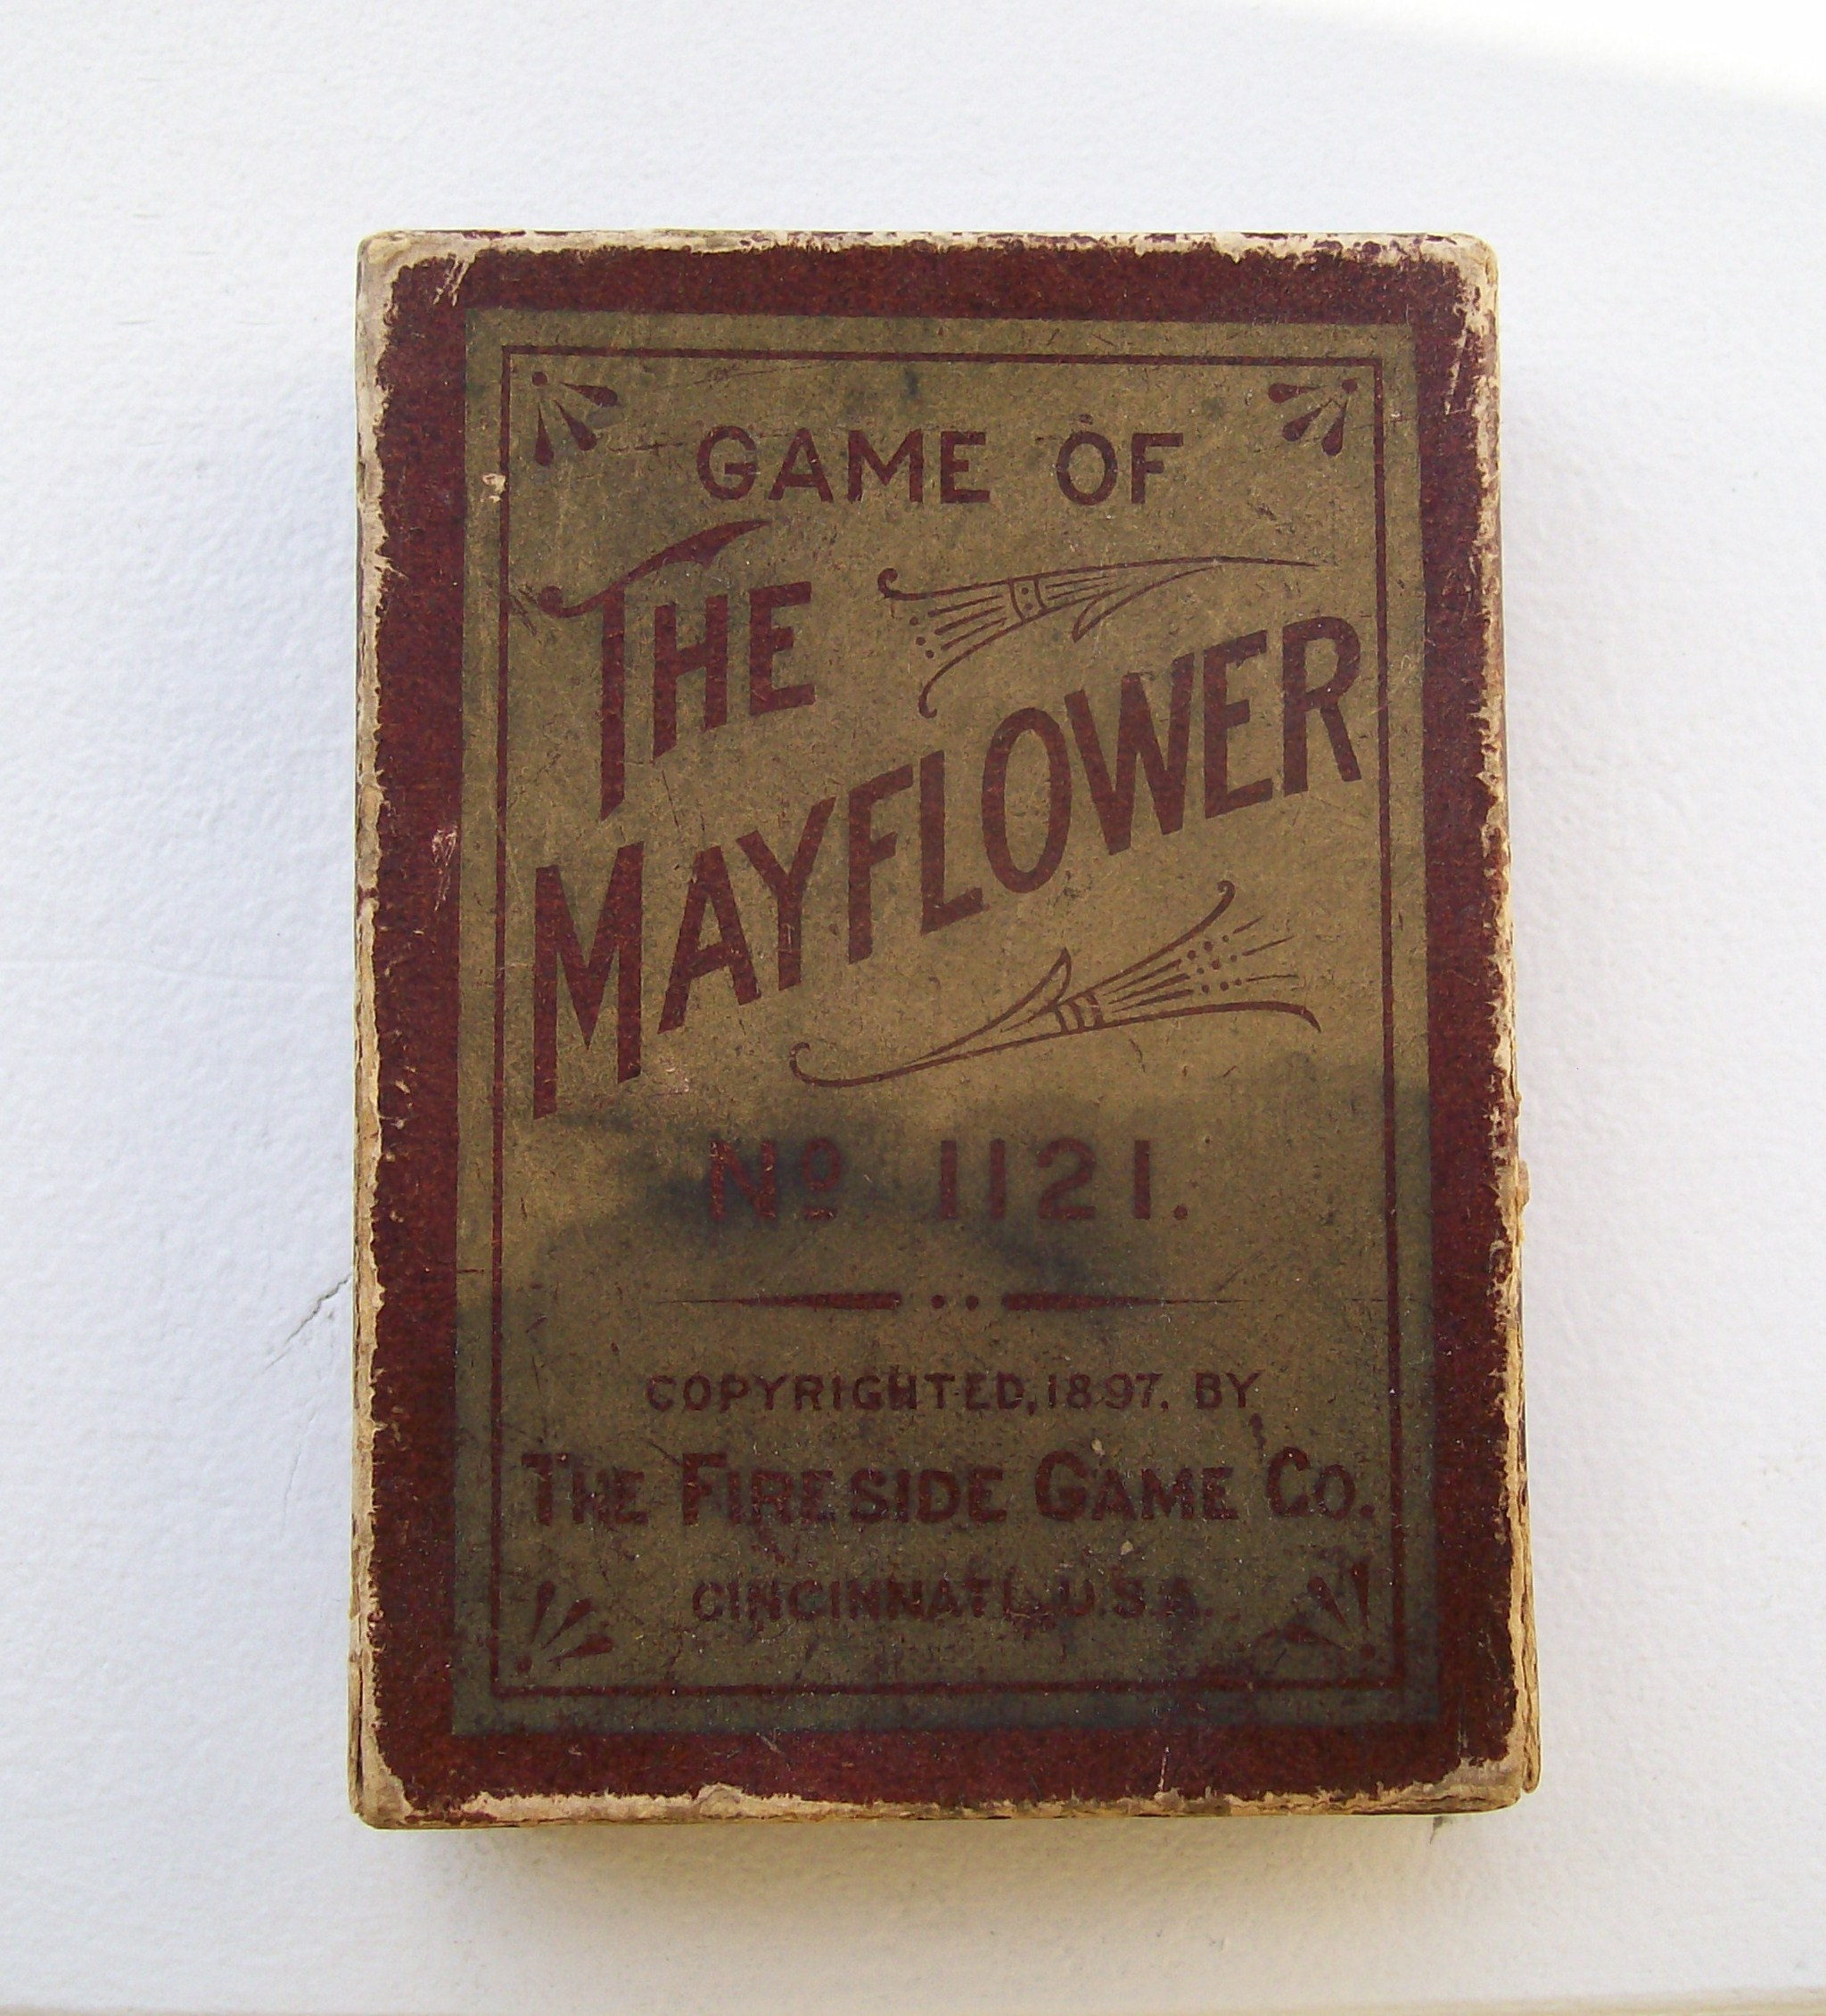 Uncategorized Mayflower Games historical images of plymouth in the old card game fireside company mayflower